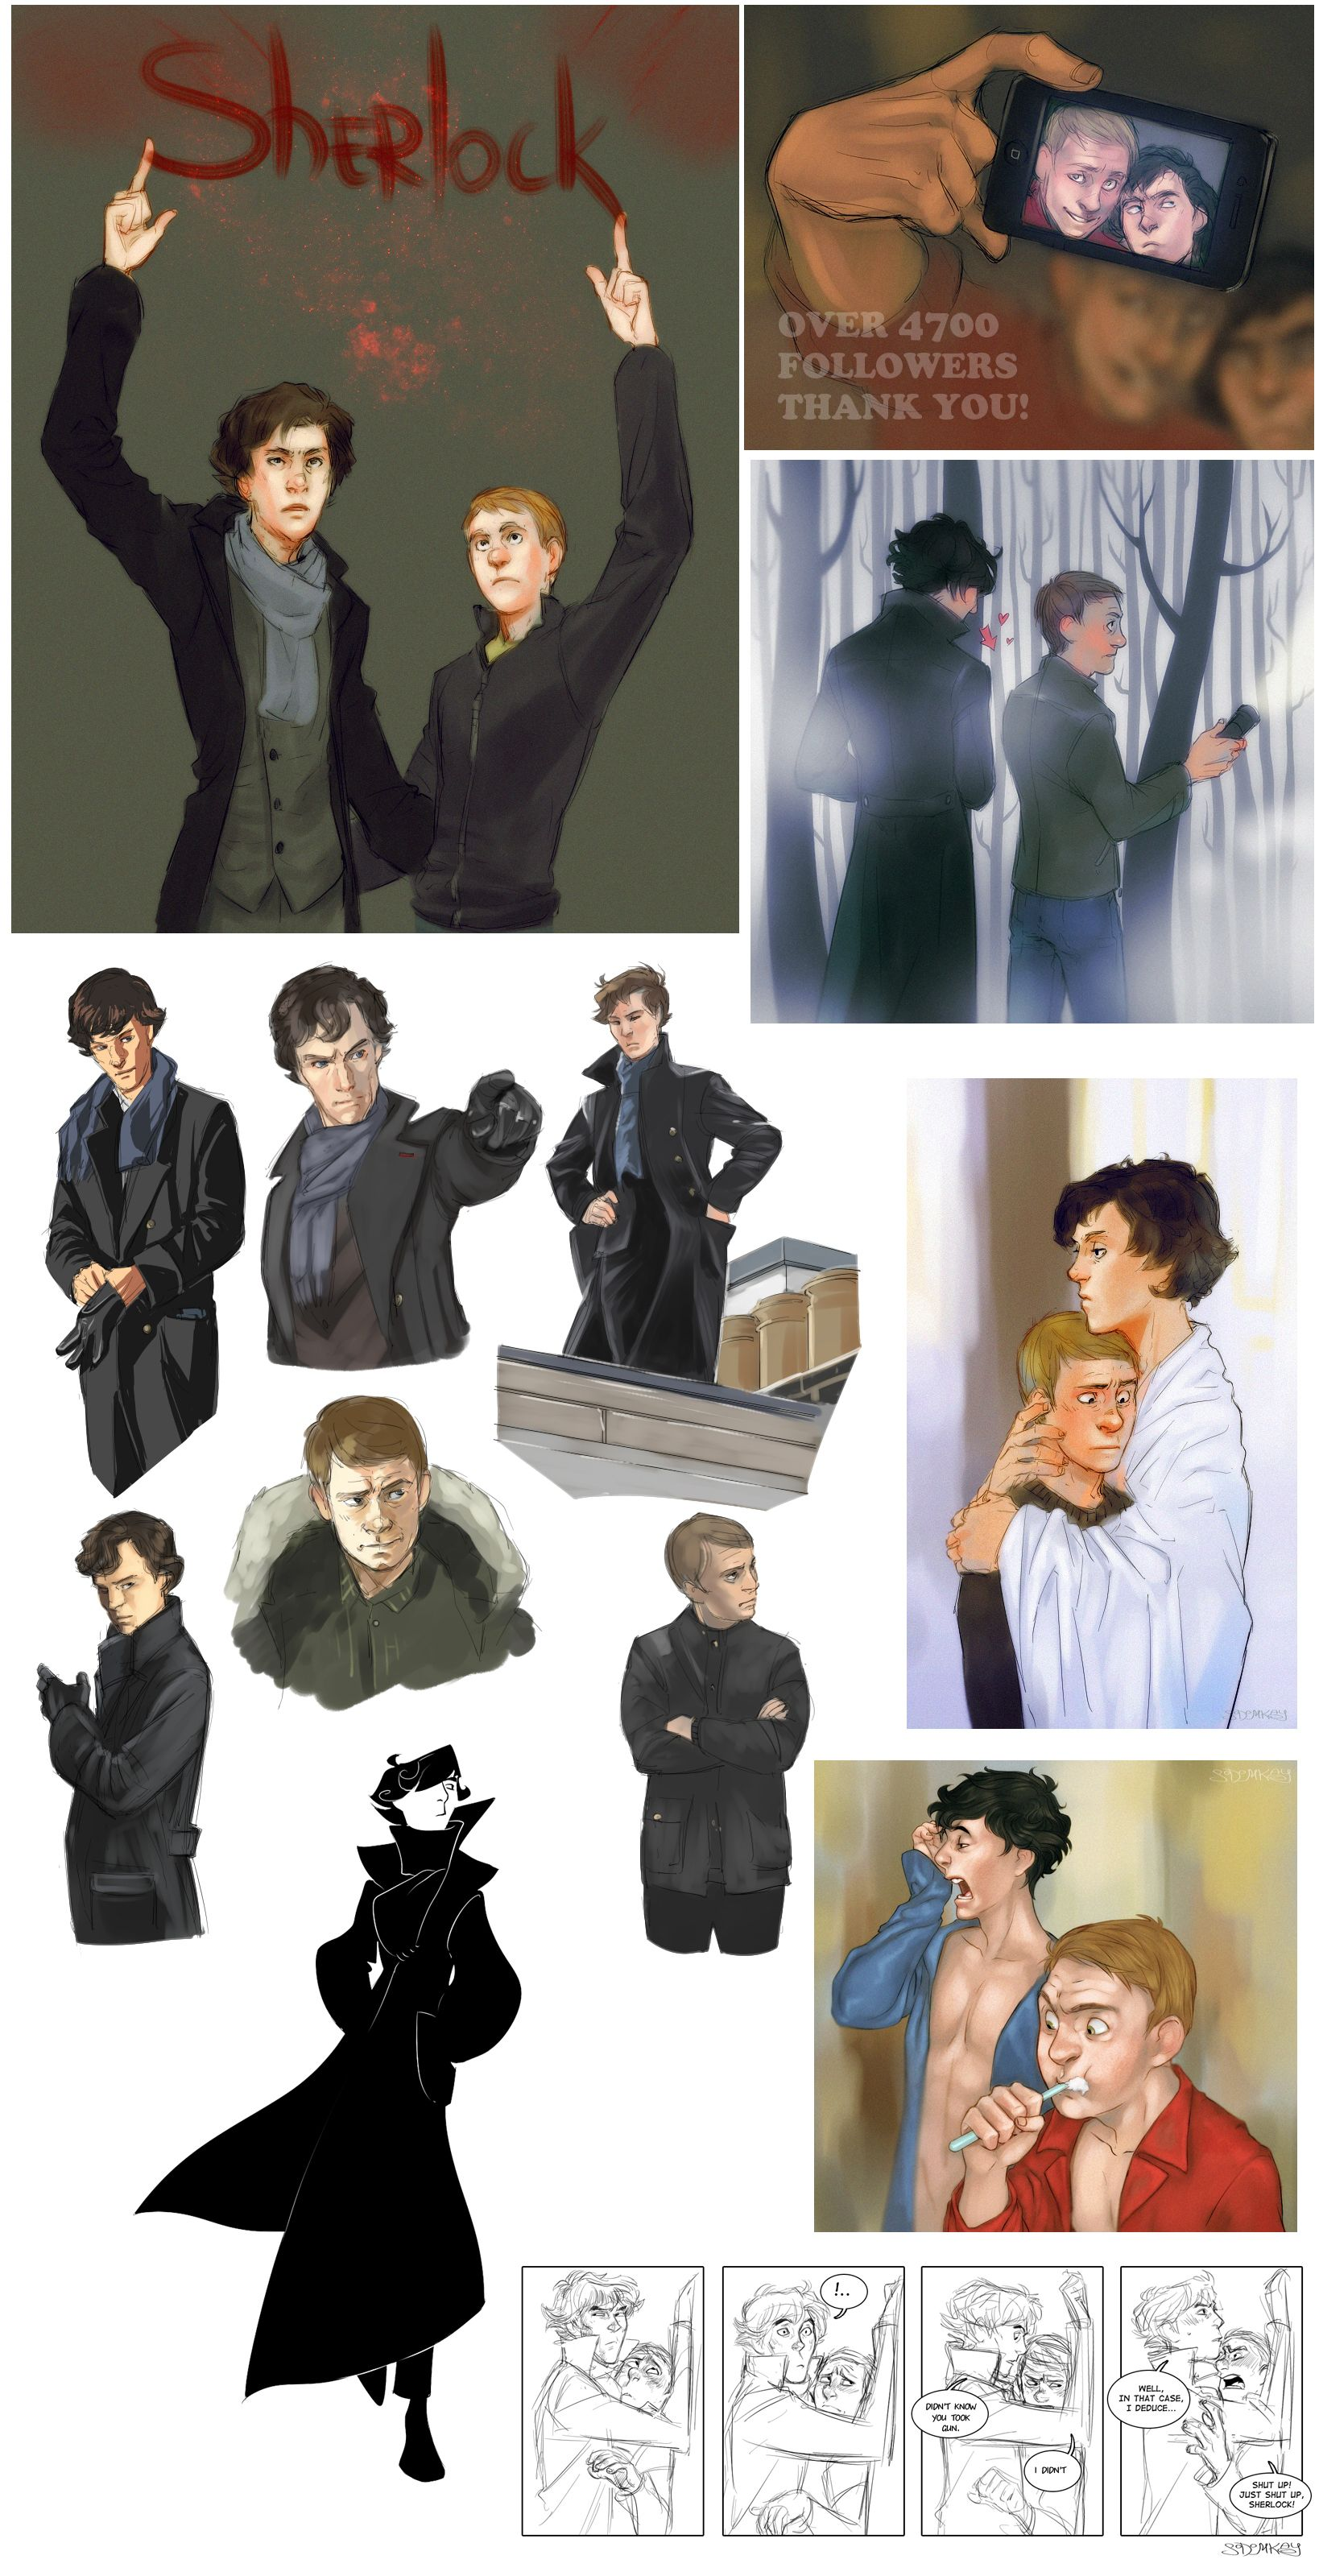 that crazy nouveau sherlock at the bottom is the best! Sherlock BBC art by MisterKay